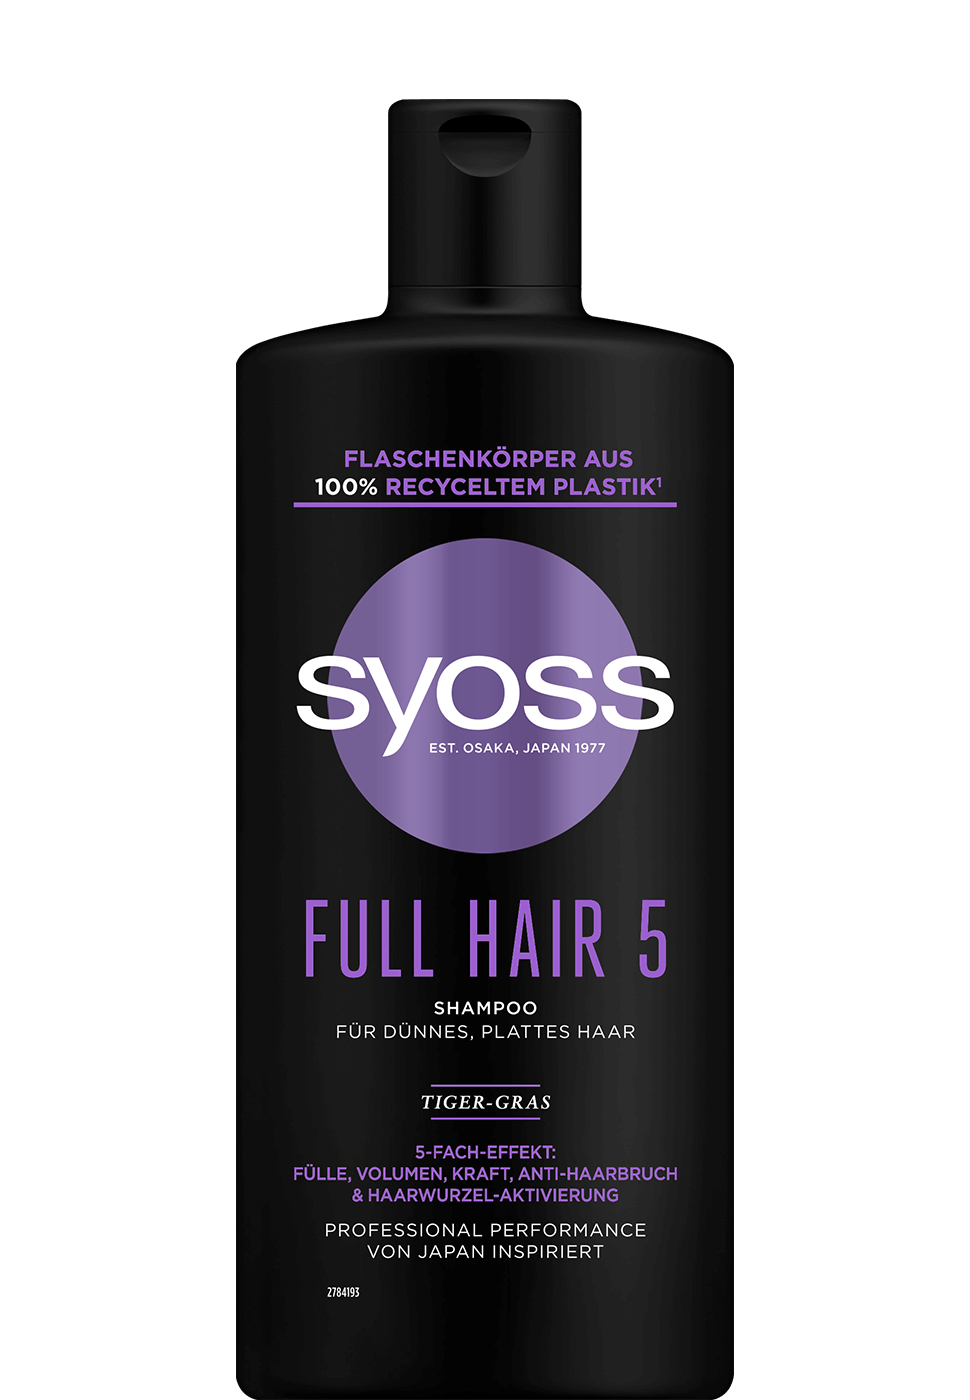 syoss_de_full_hair_5_shampoo_970x1400